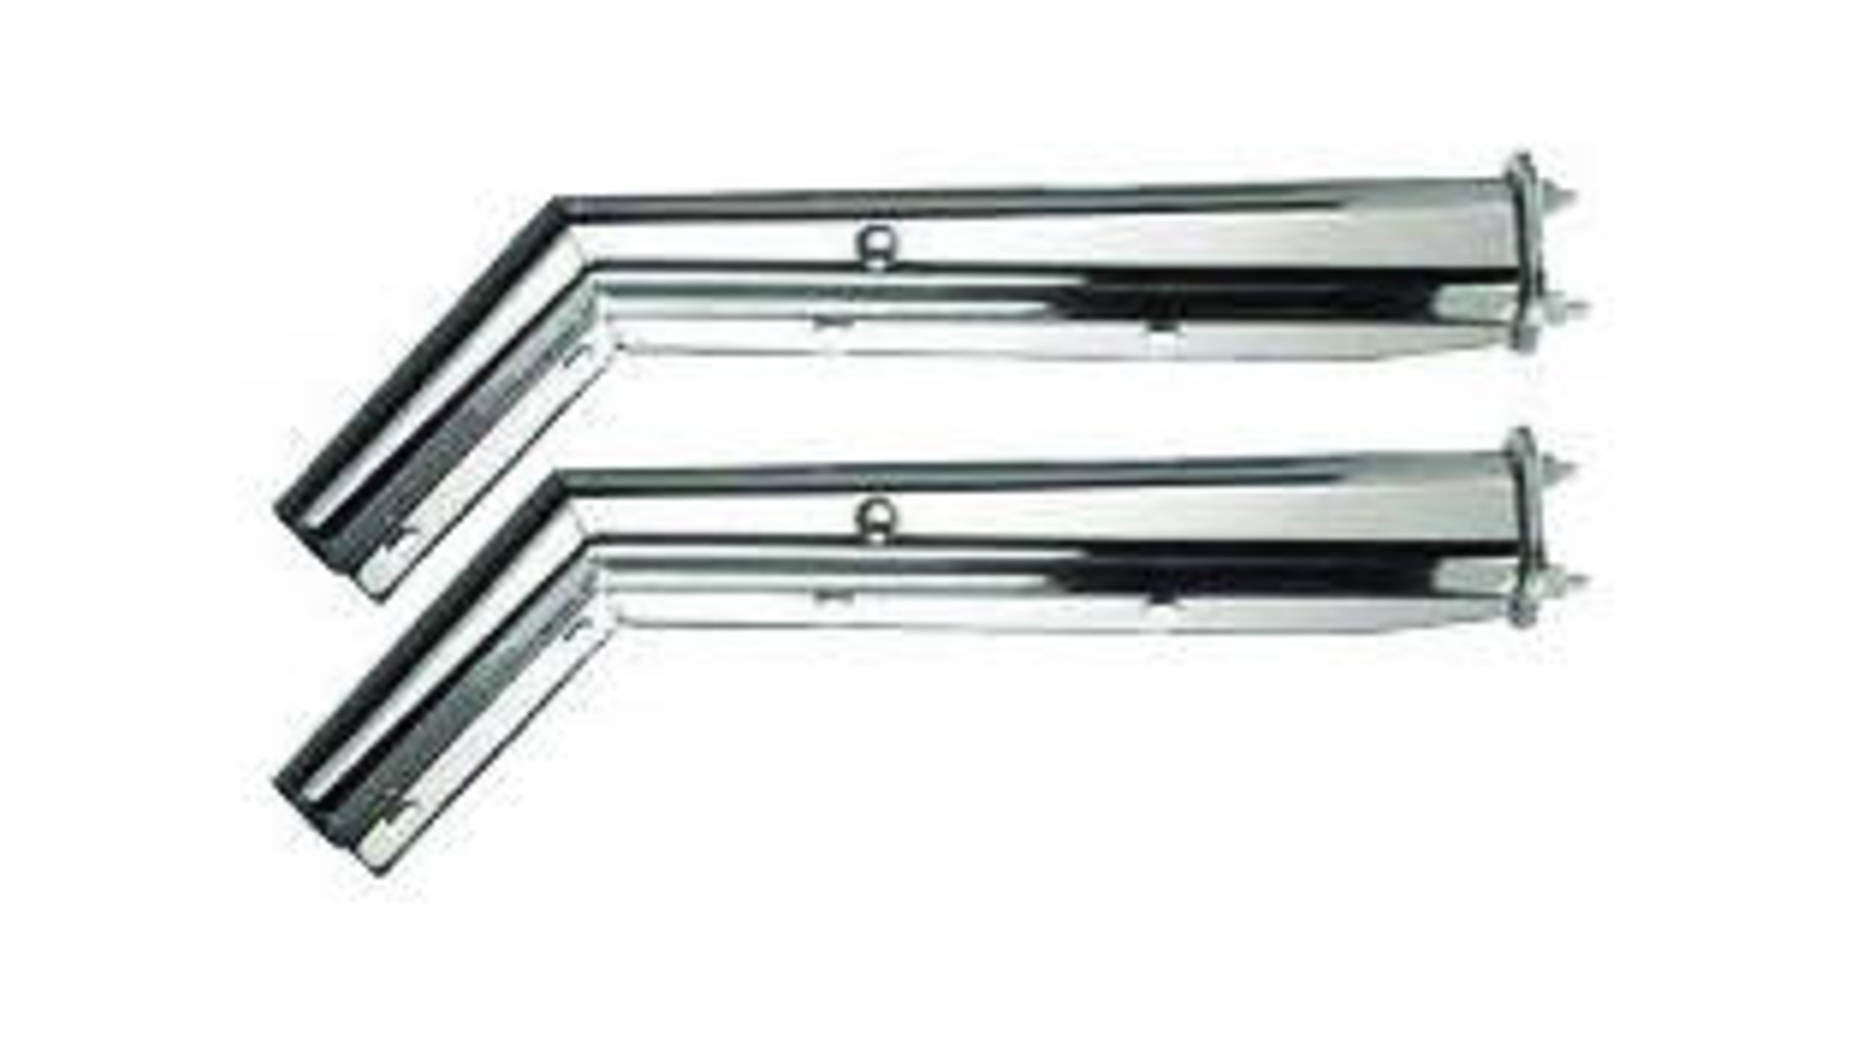 f mud flap hanger chrome degree angel spacing f245522 mud flap hanger chrome 45 degree angel 2 1 2 spacing between bolts by pair